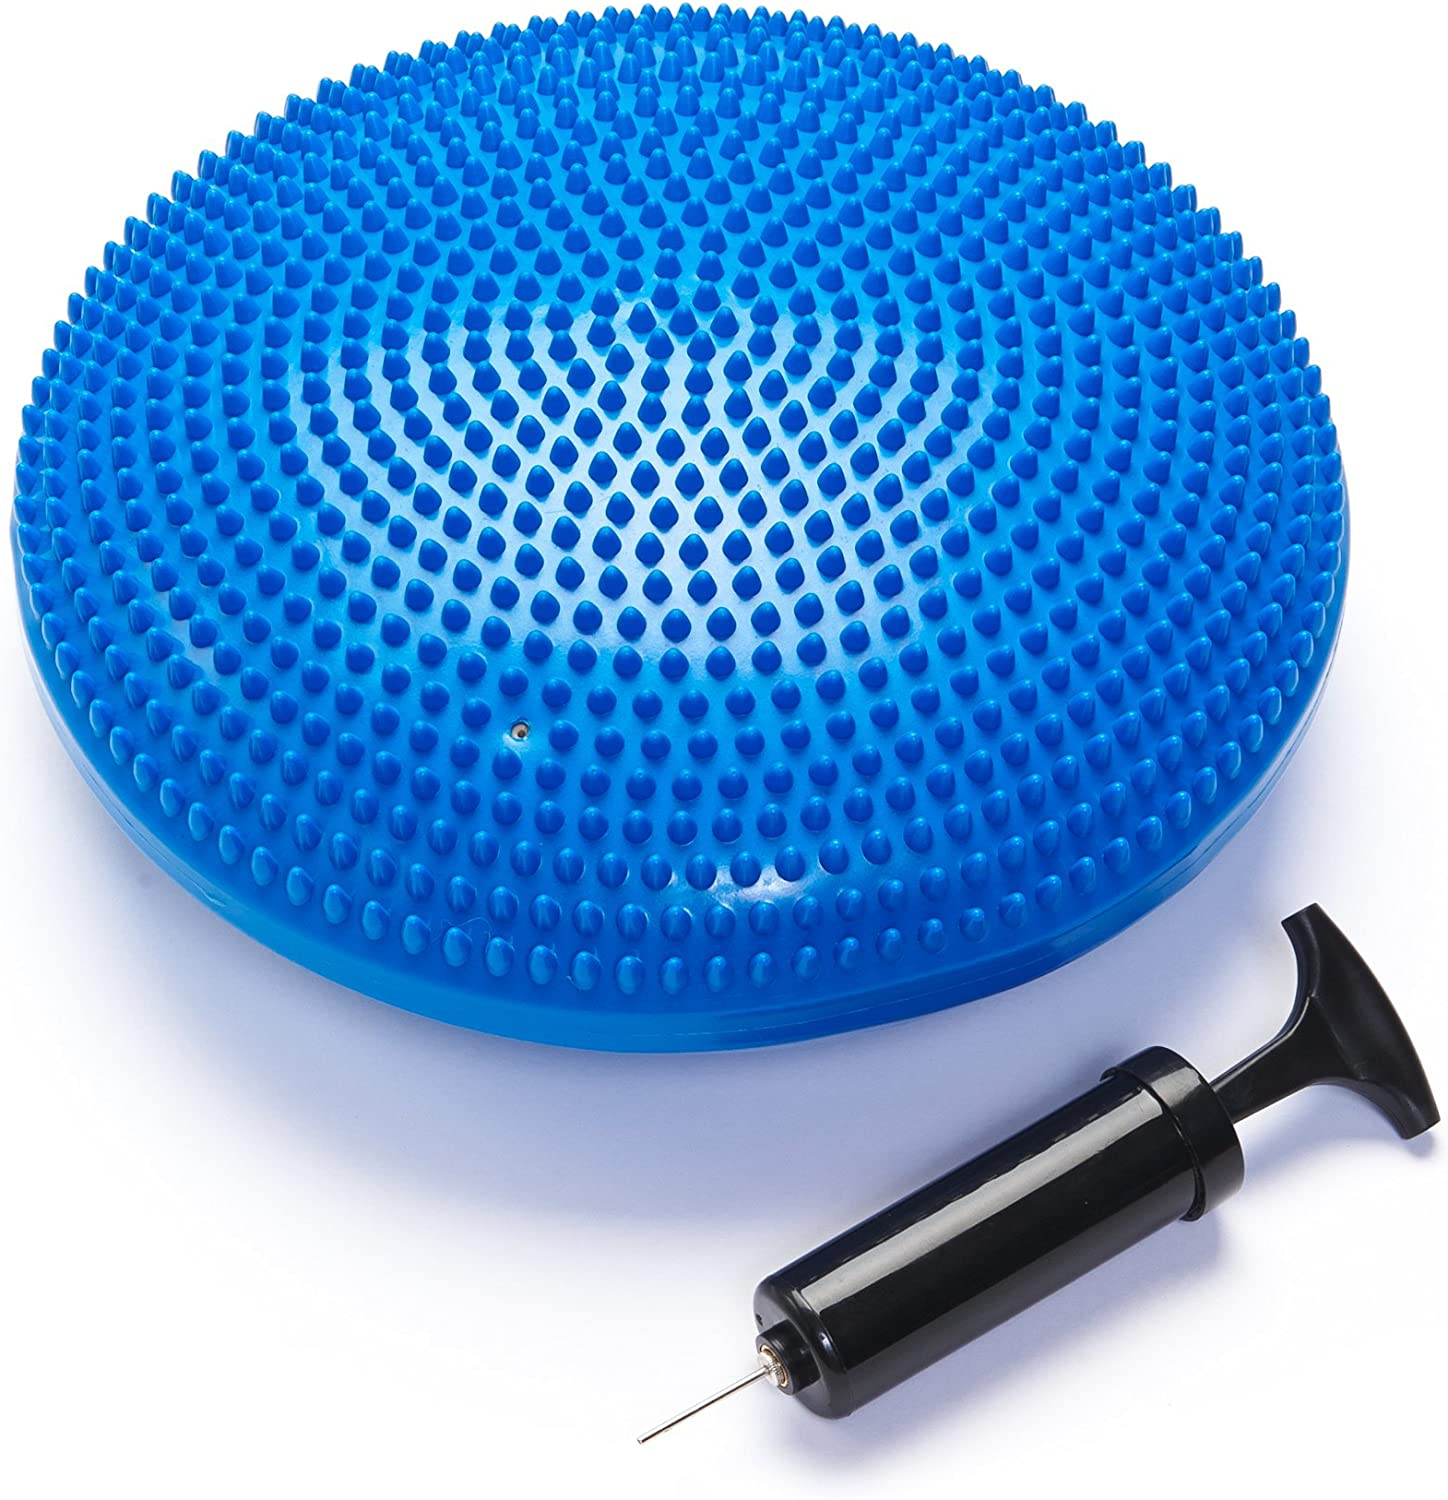 Black Mountain Products Exercise Balance Stability Disc with Hand Pump, Blue : Sports & Outdoors